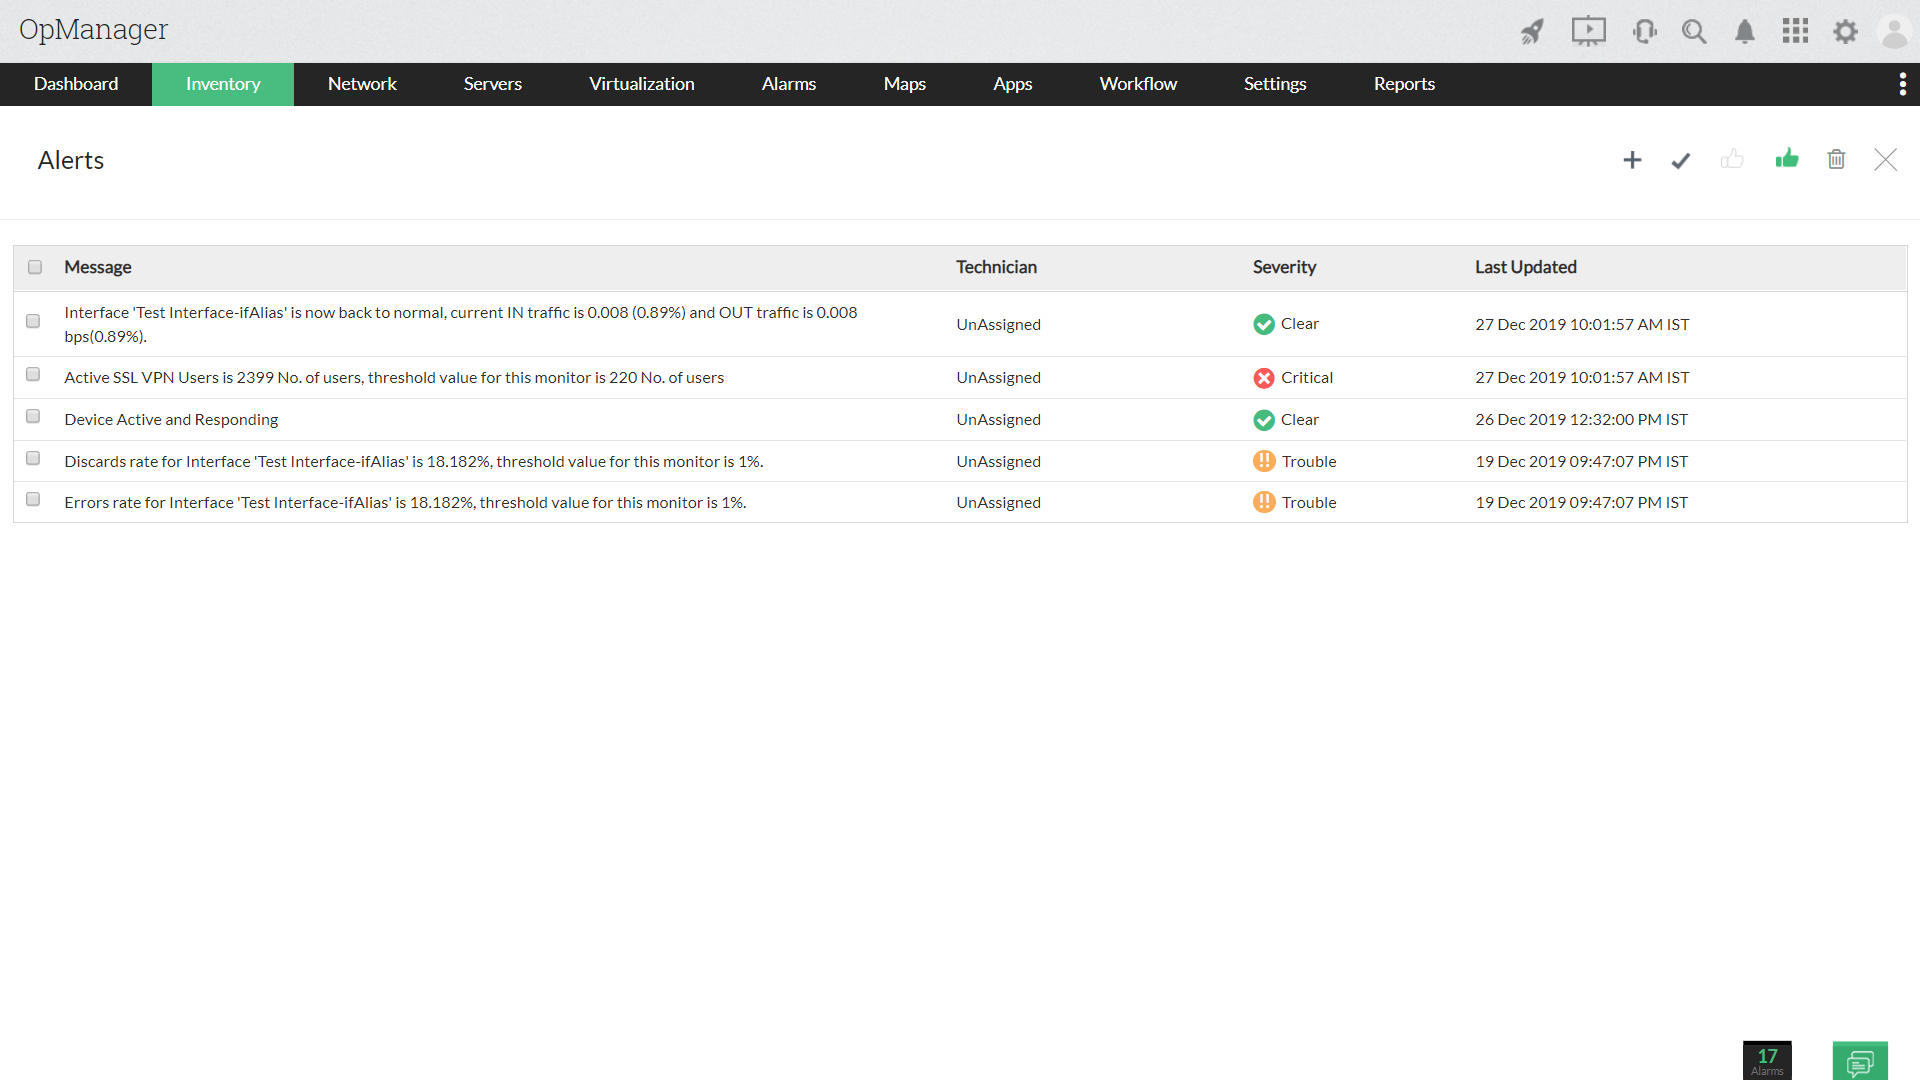 VPN Monitoring Software - ManageEngine OpManager